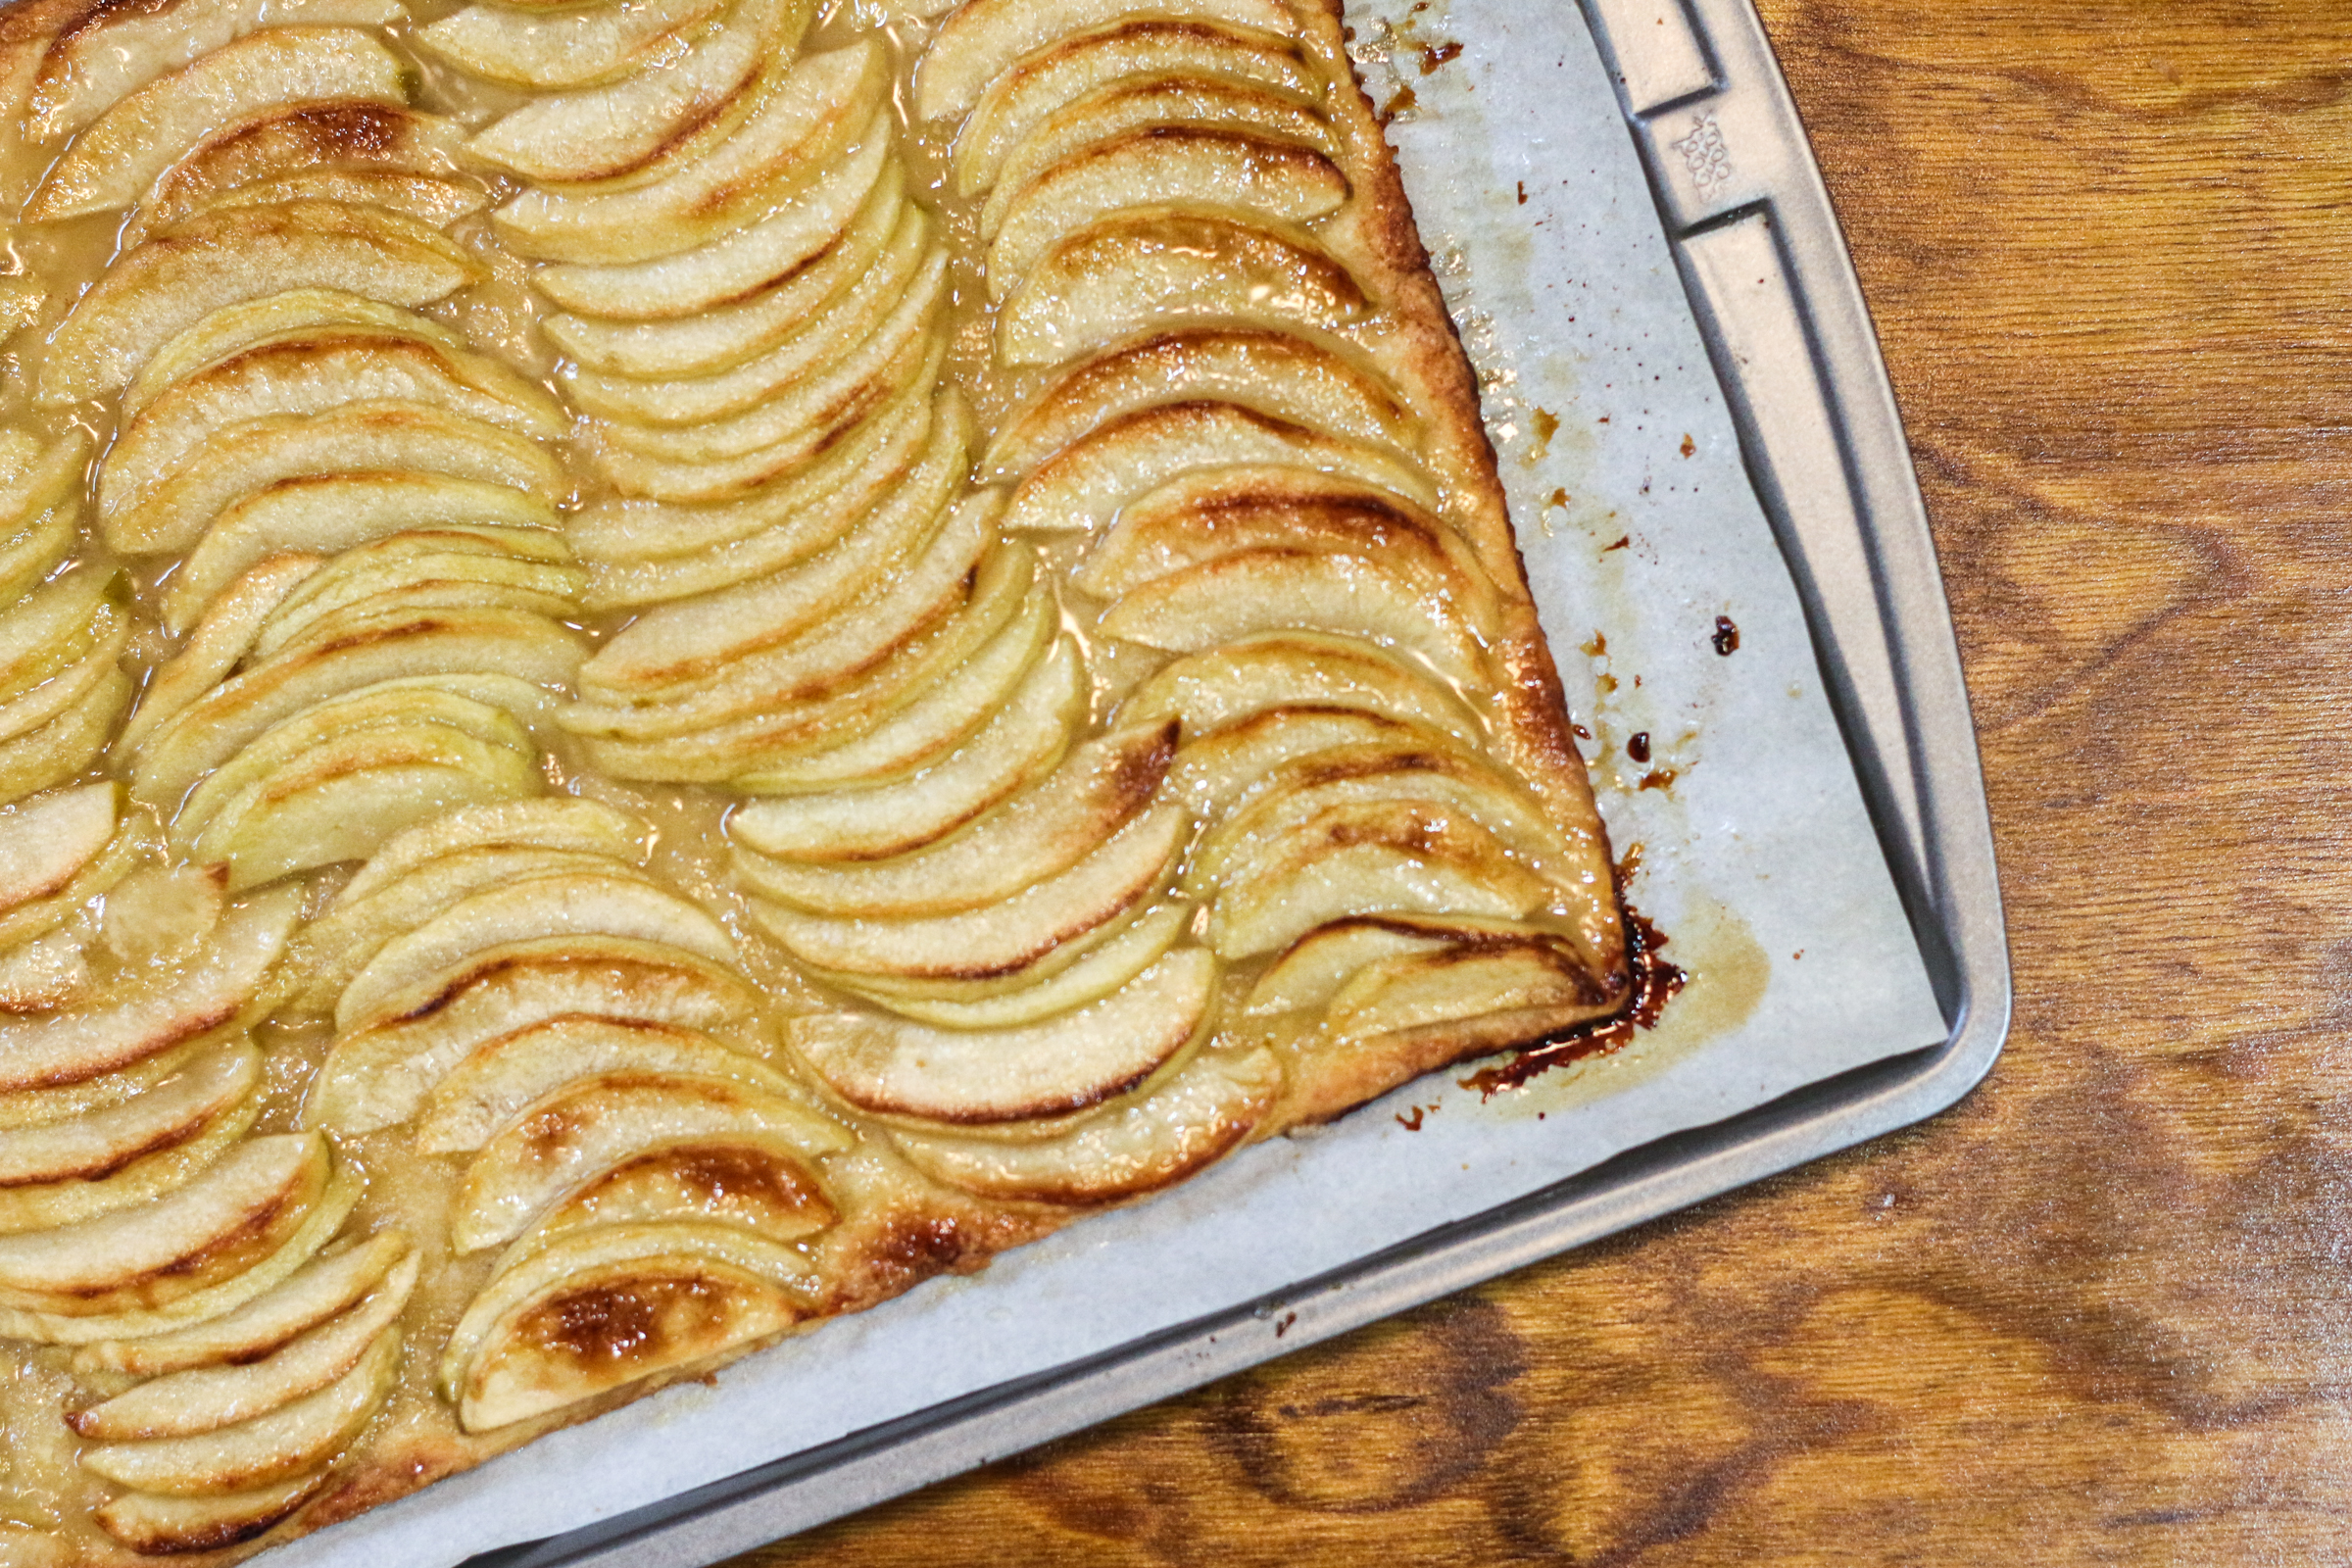 Apple Tart with Apple Glaze | ChefJulieYoon.com